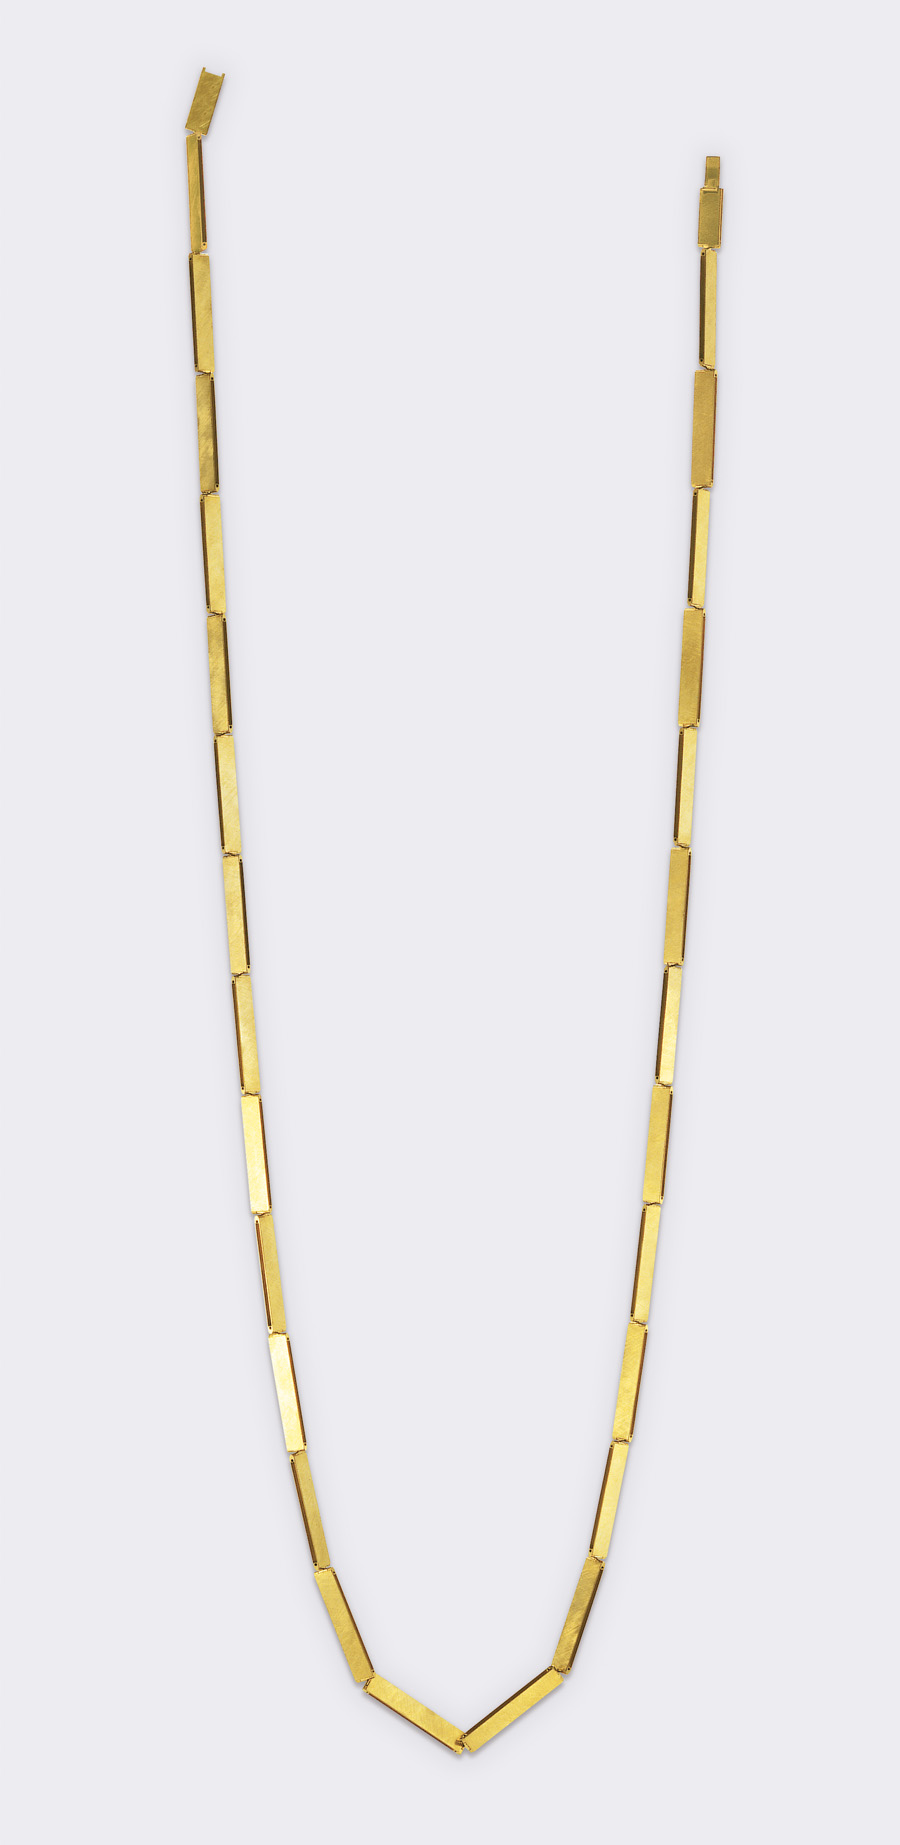 necklace  2009  gold 750  1175x8  mm